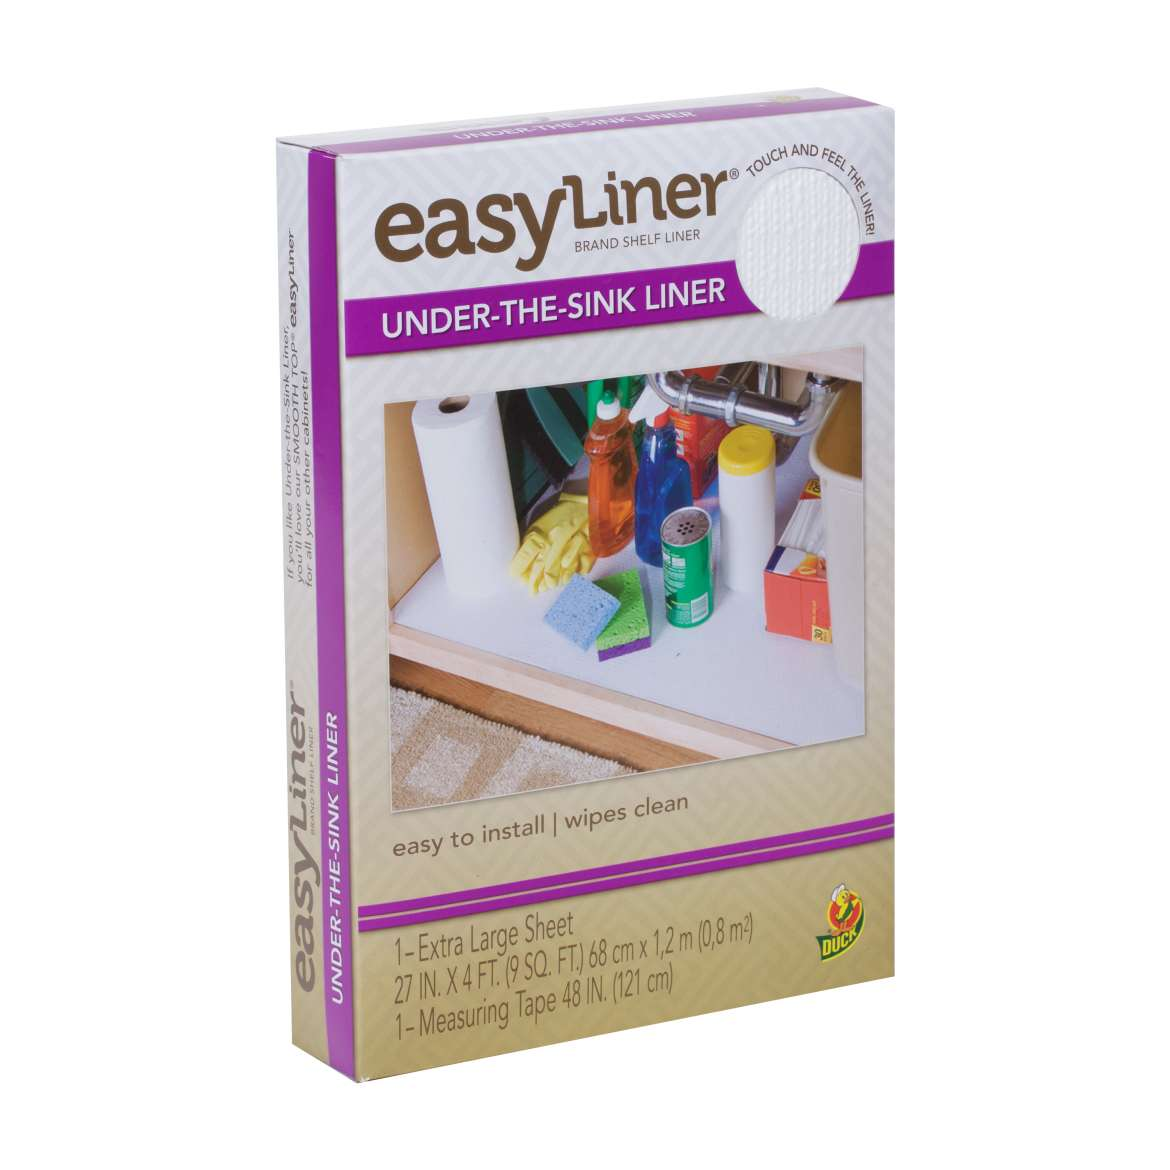 EasyLiner® Under-the-Sink Liner Image